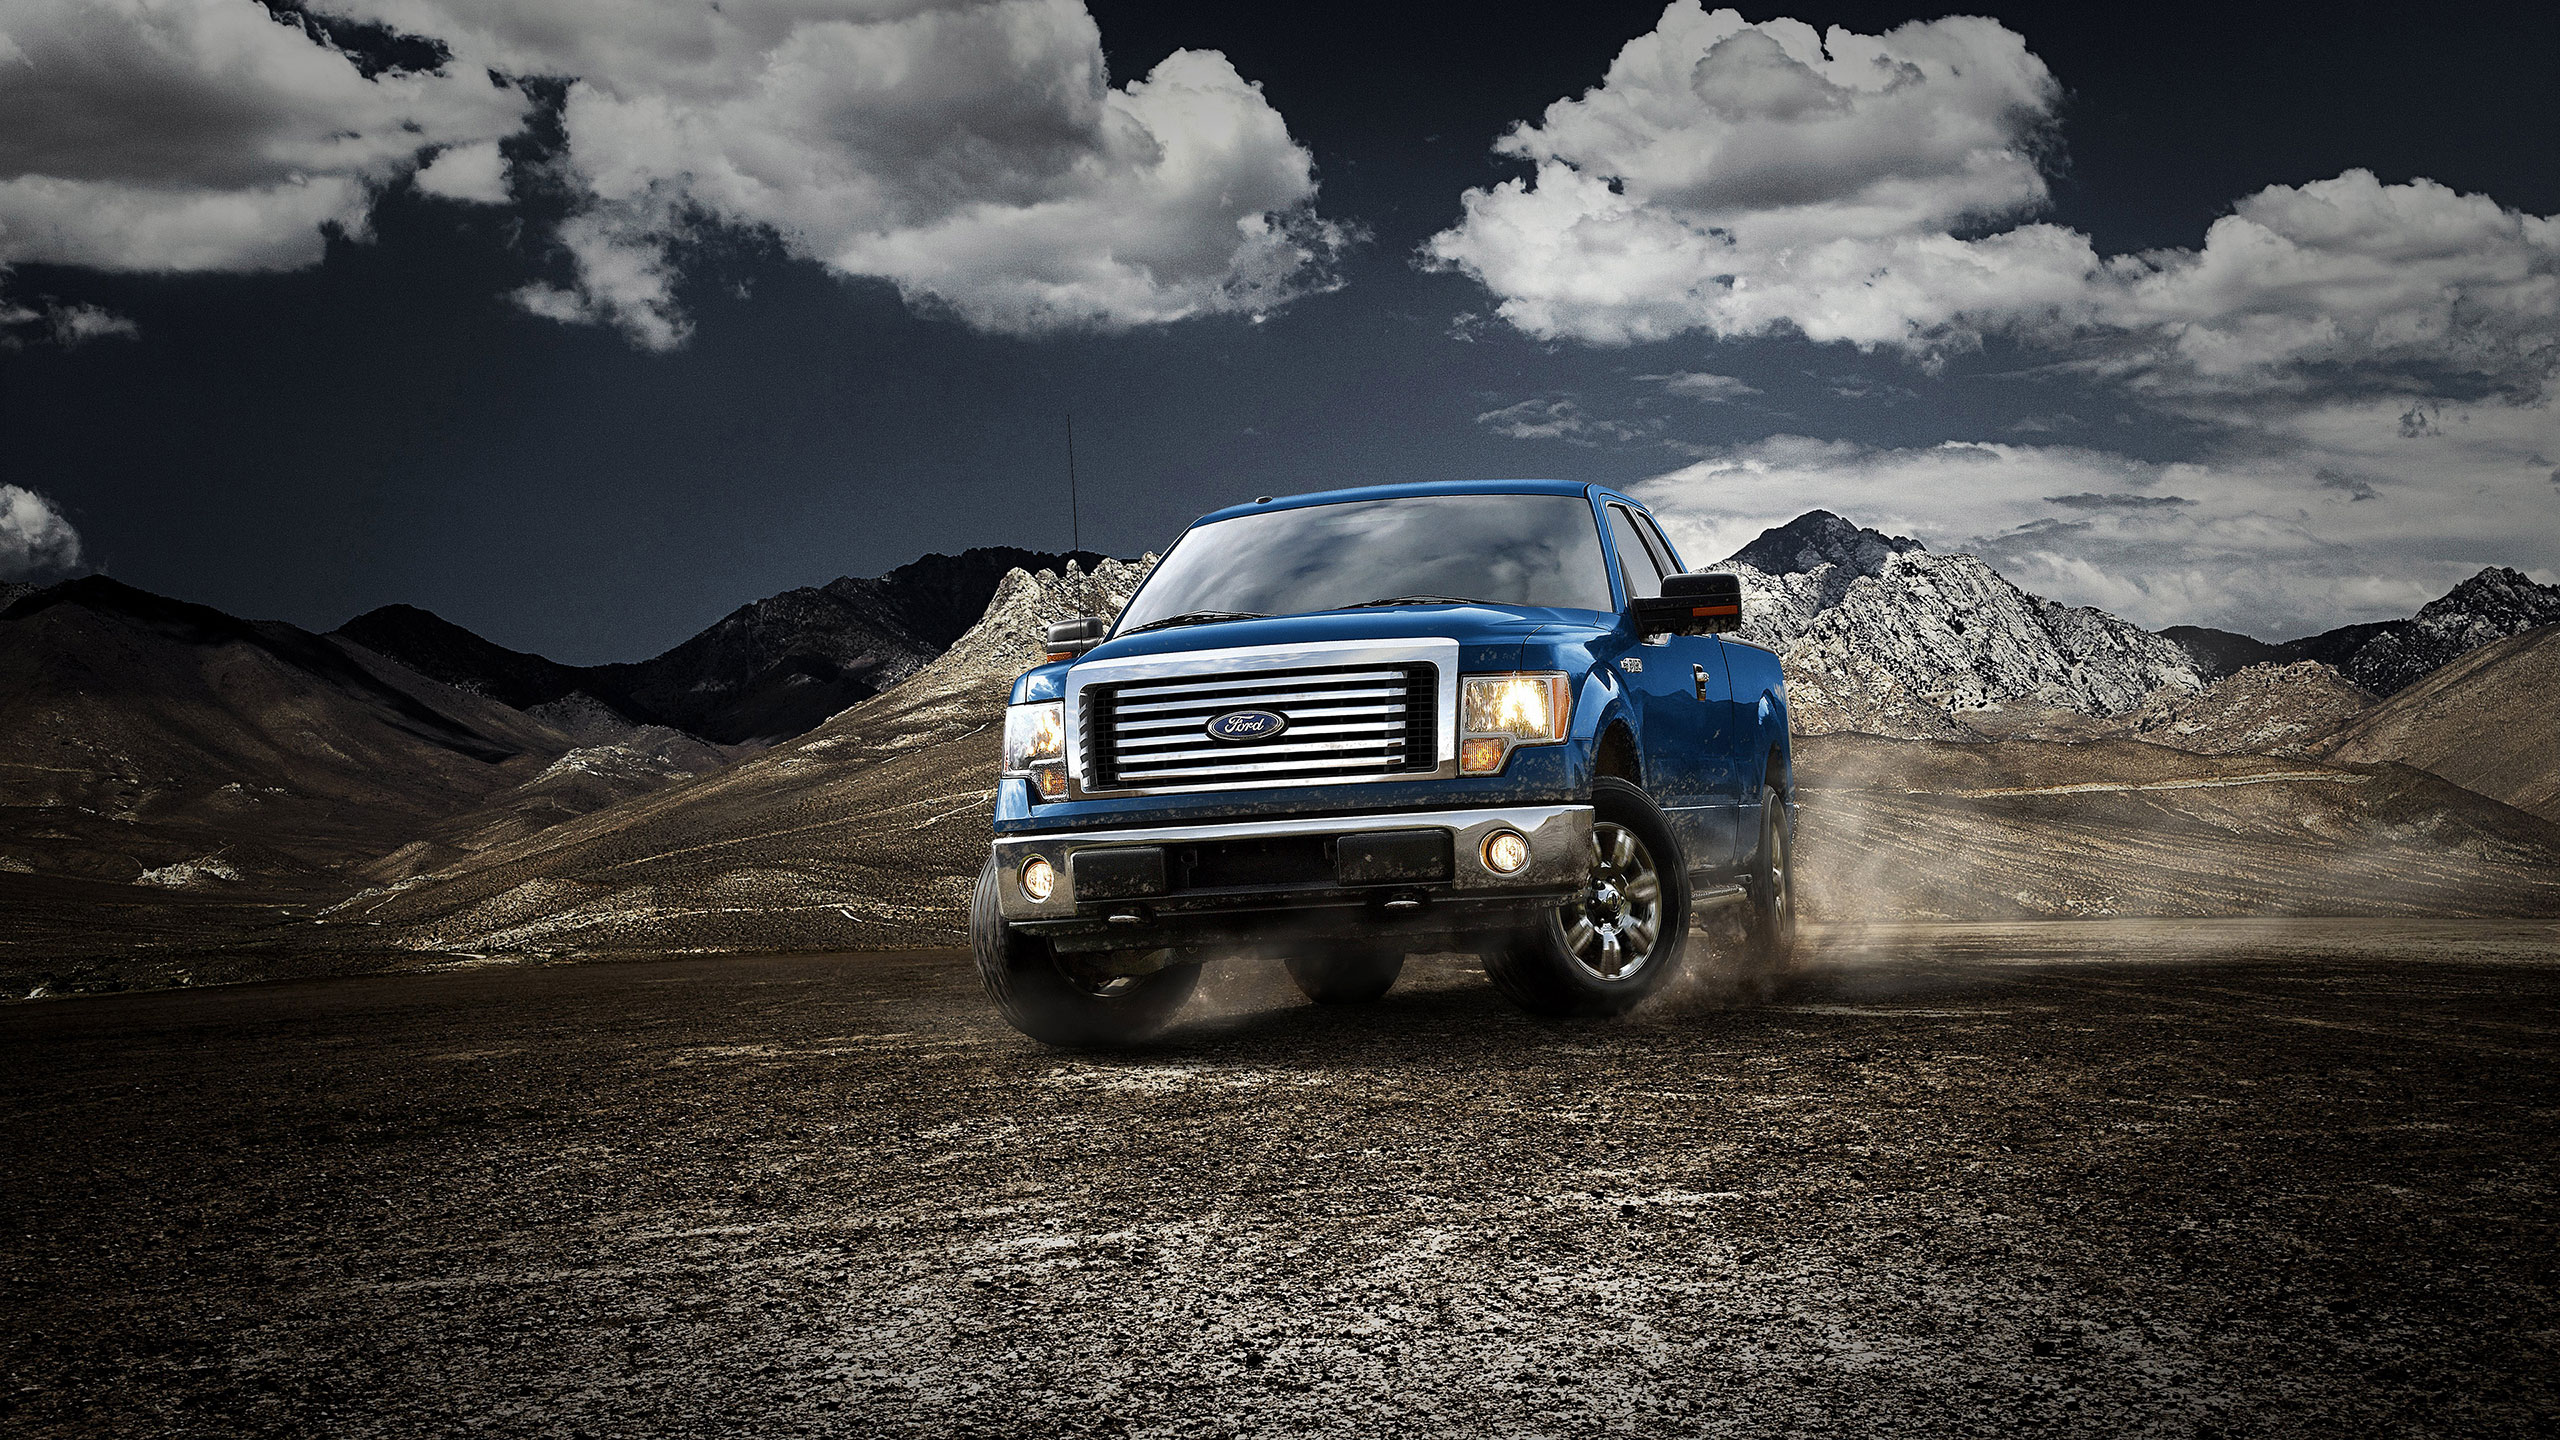 Ford F 150 Hd Wallpaper Background Image 2560x1440 Id 397175